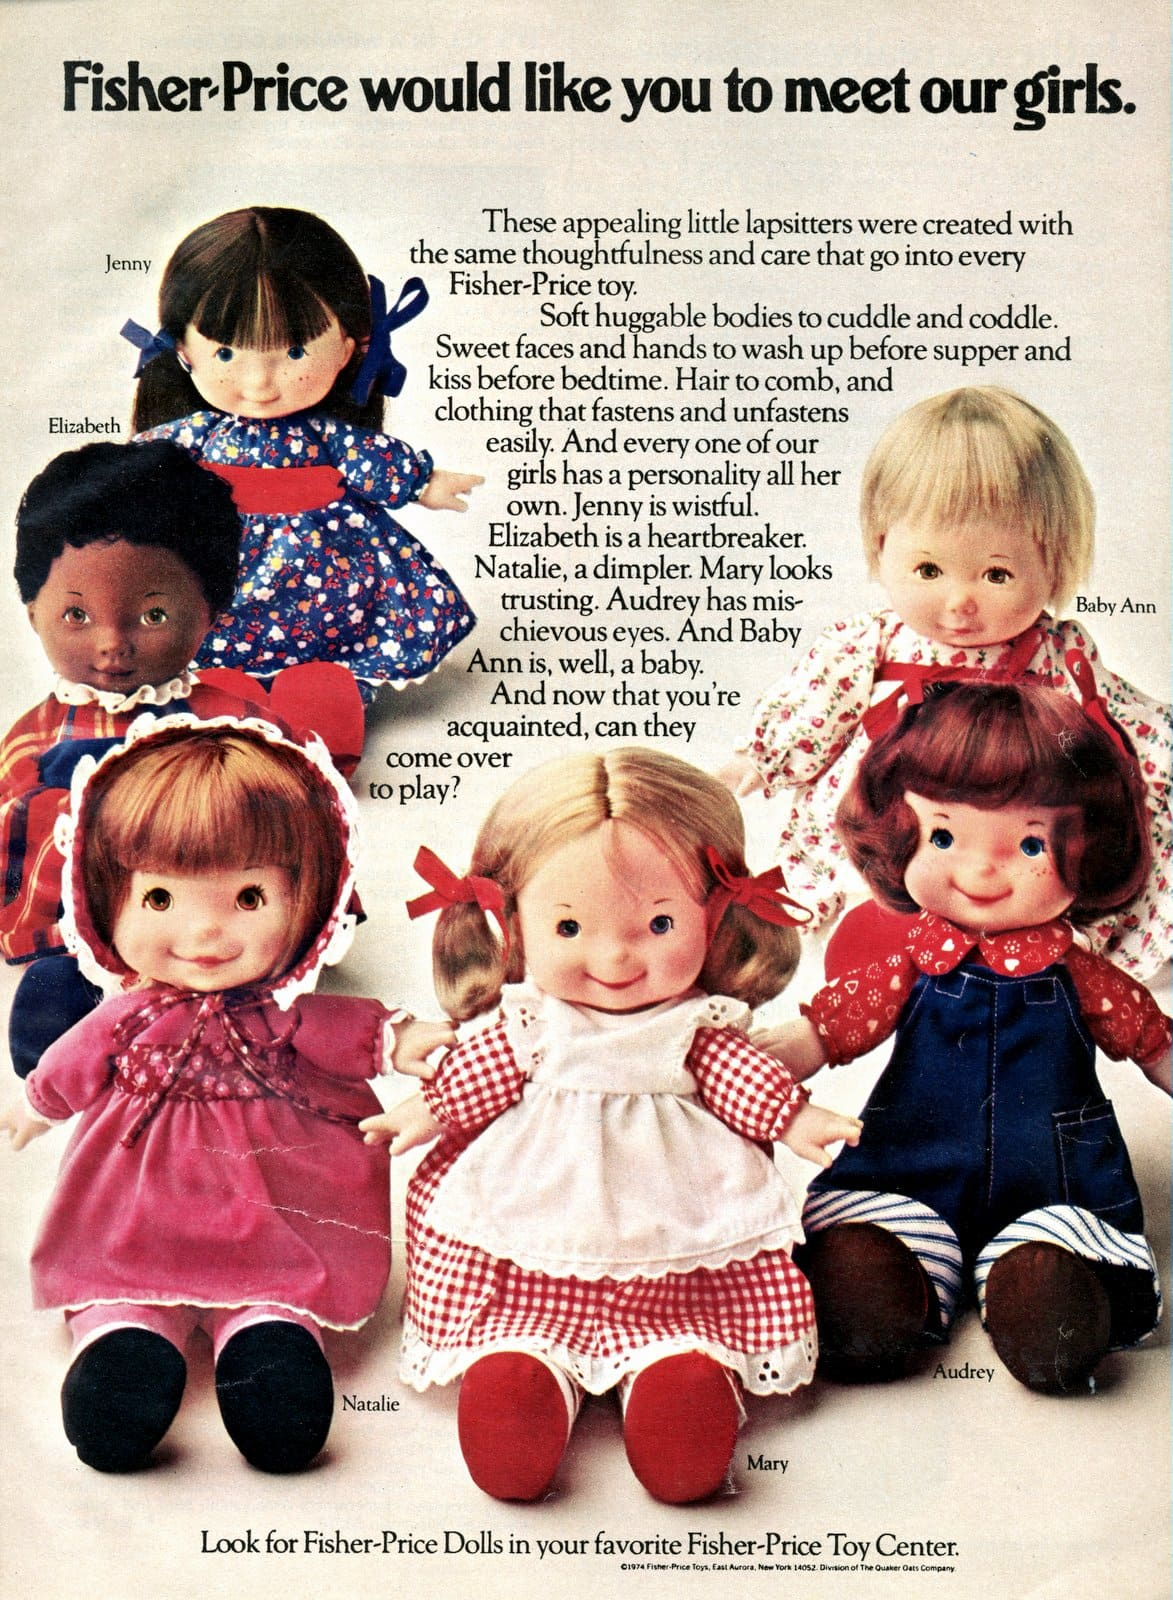 Fisher-Price would like you to meet our dolls (1974)